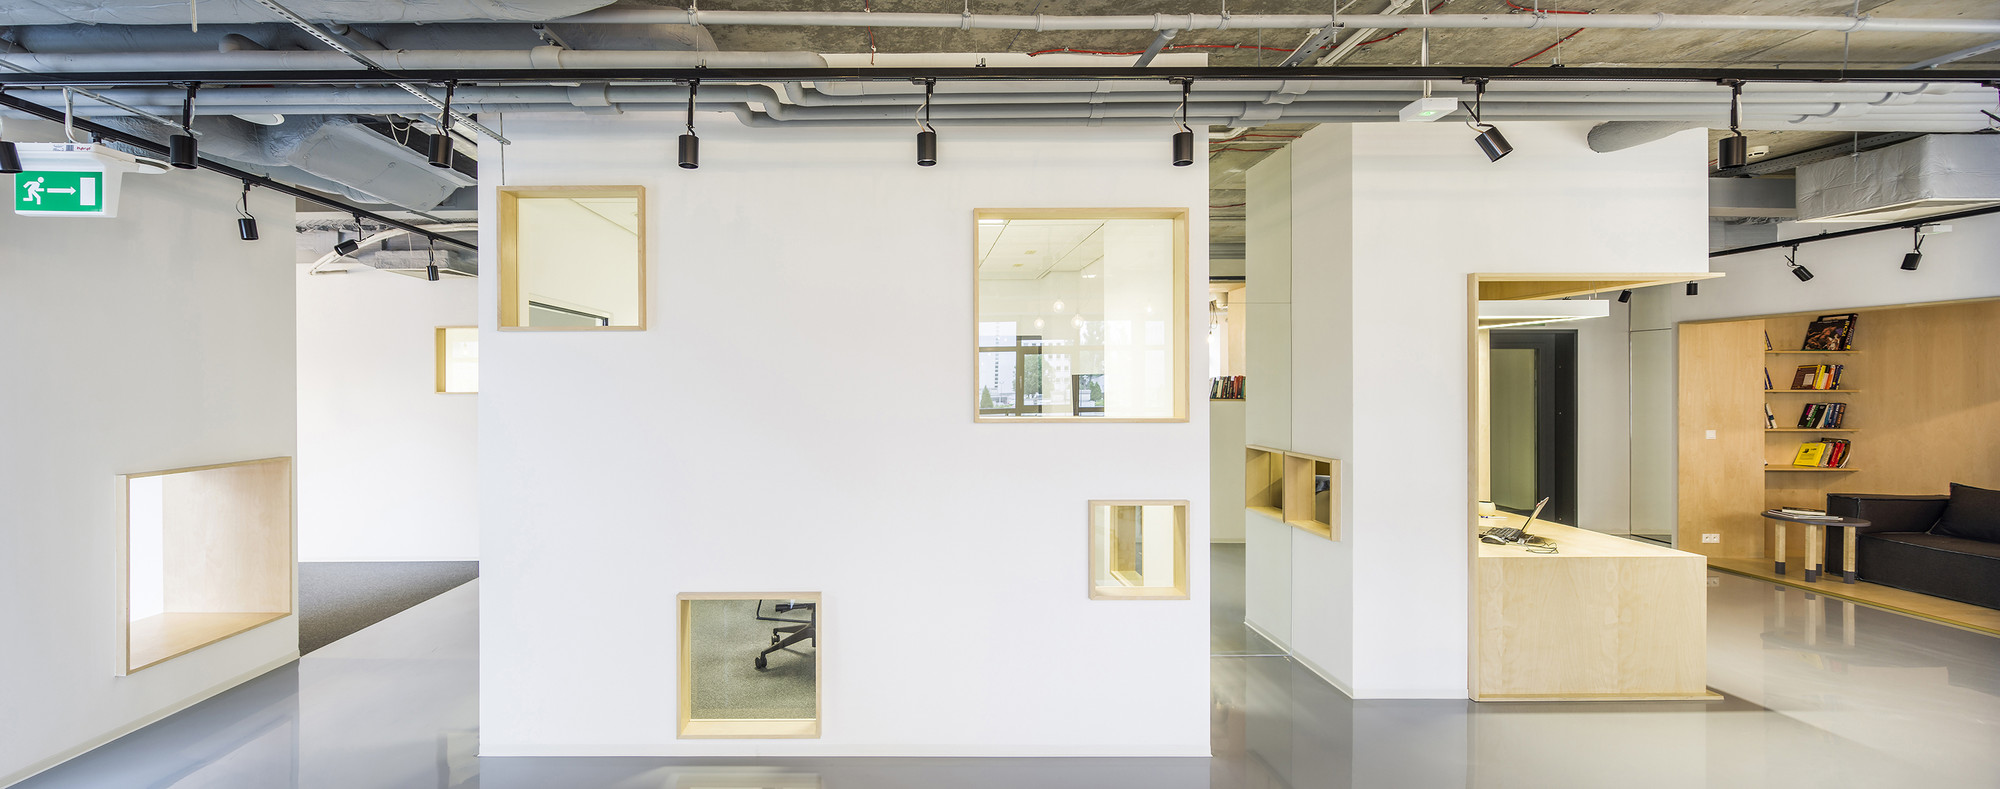 Gallery of DECERTO / MOKO Architects + MFRMGR - 12